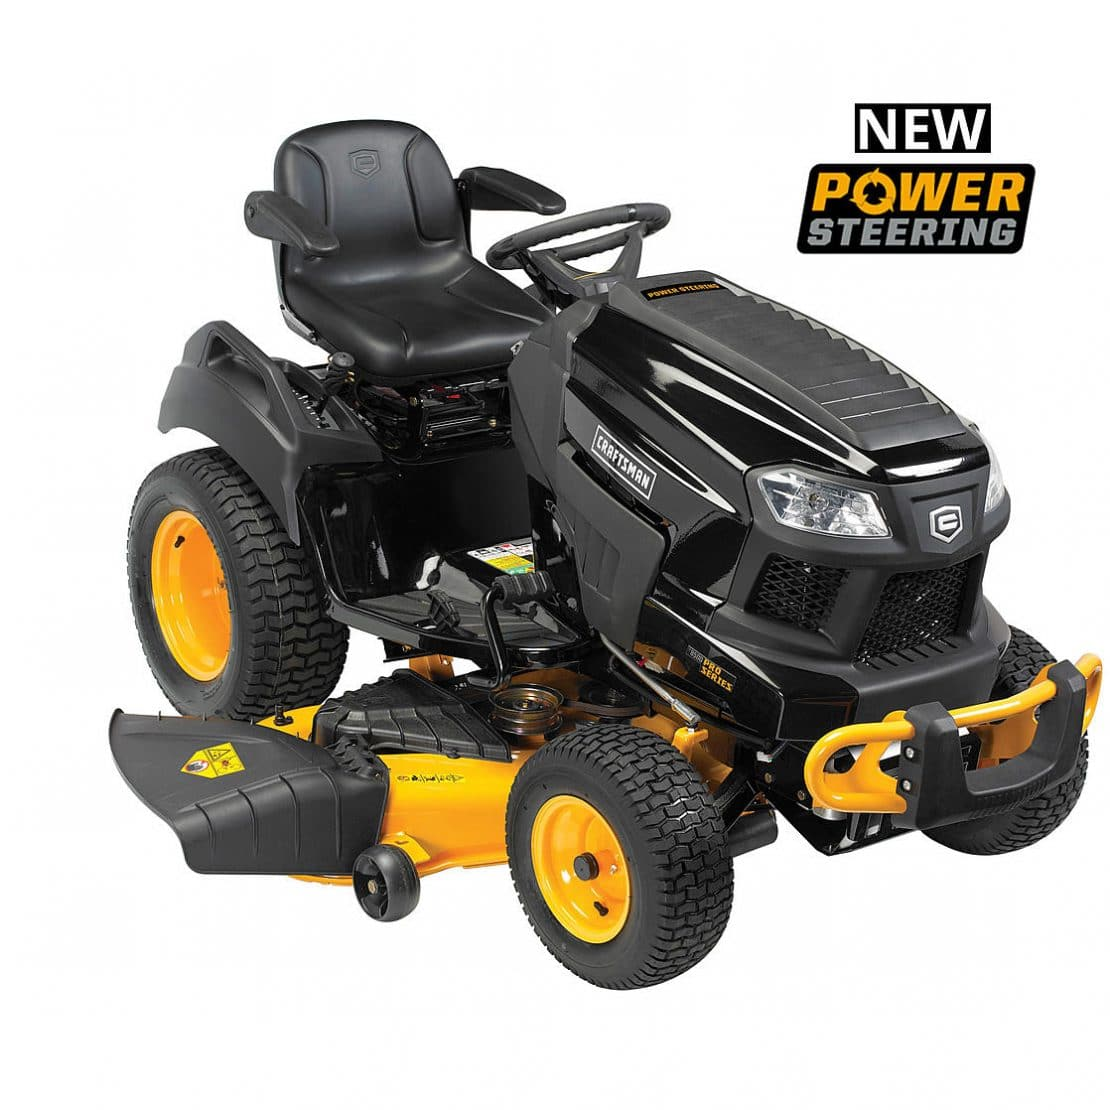 2018 Craftsman Garden Tractor : Craftsman garden tractor line up you will really